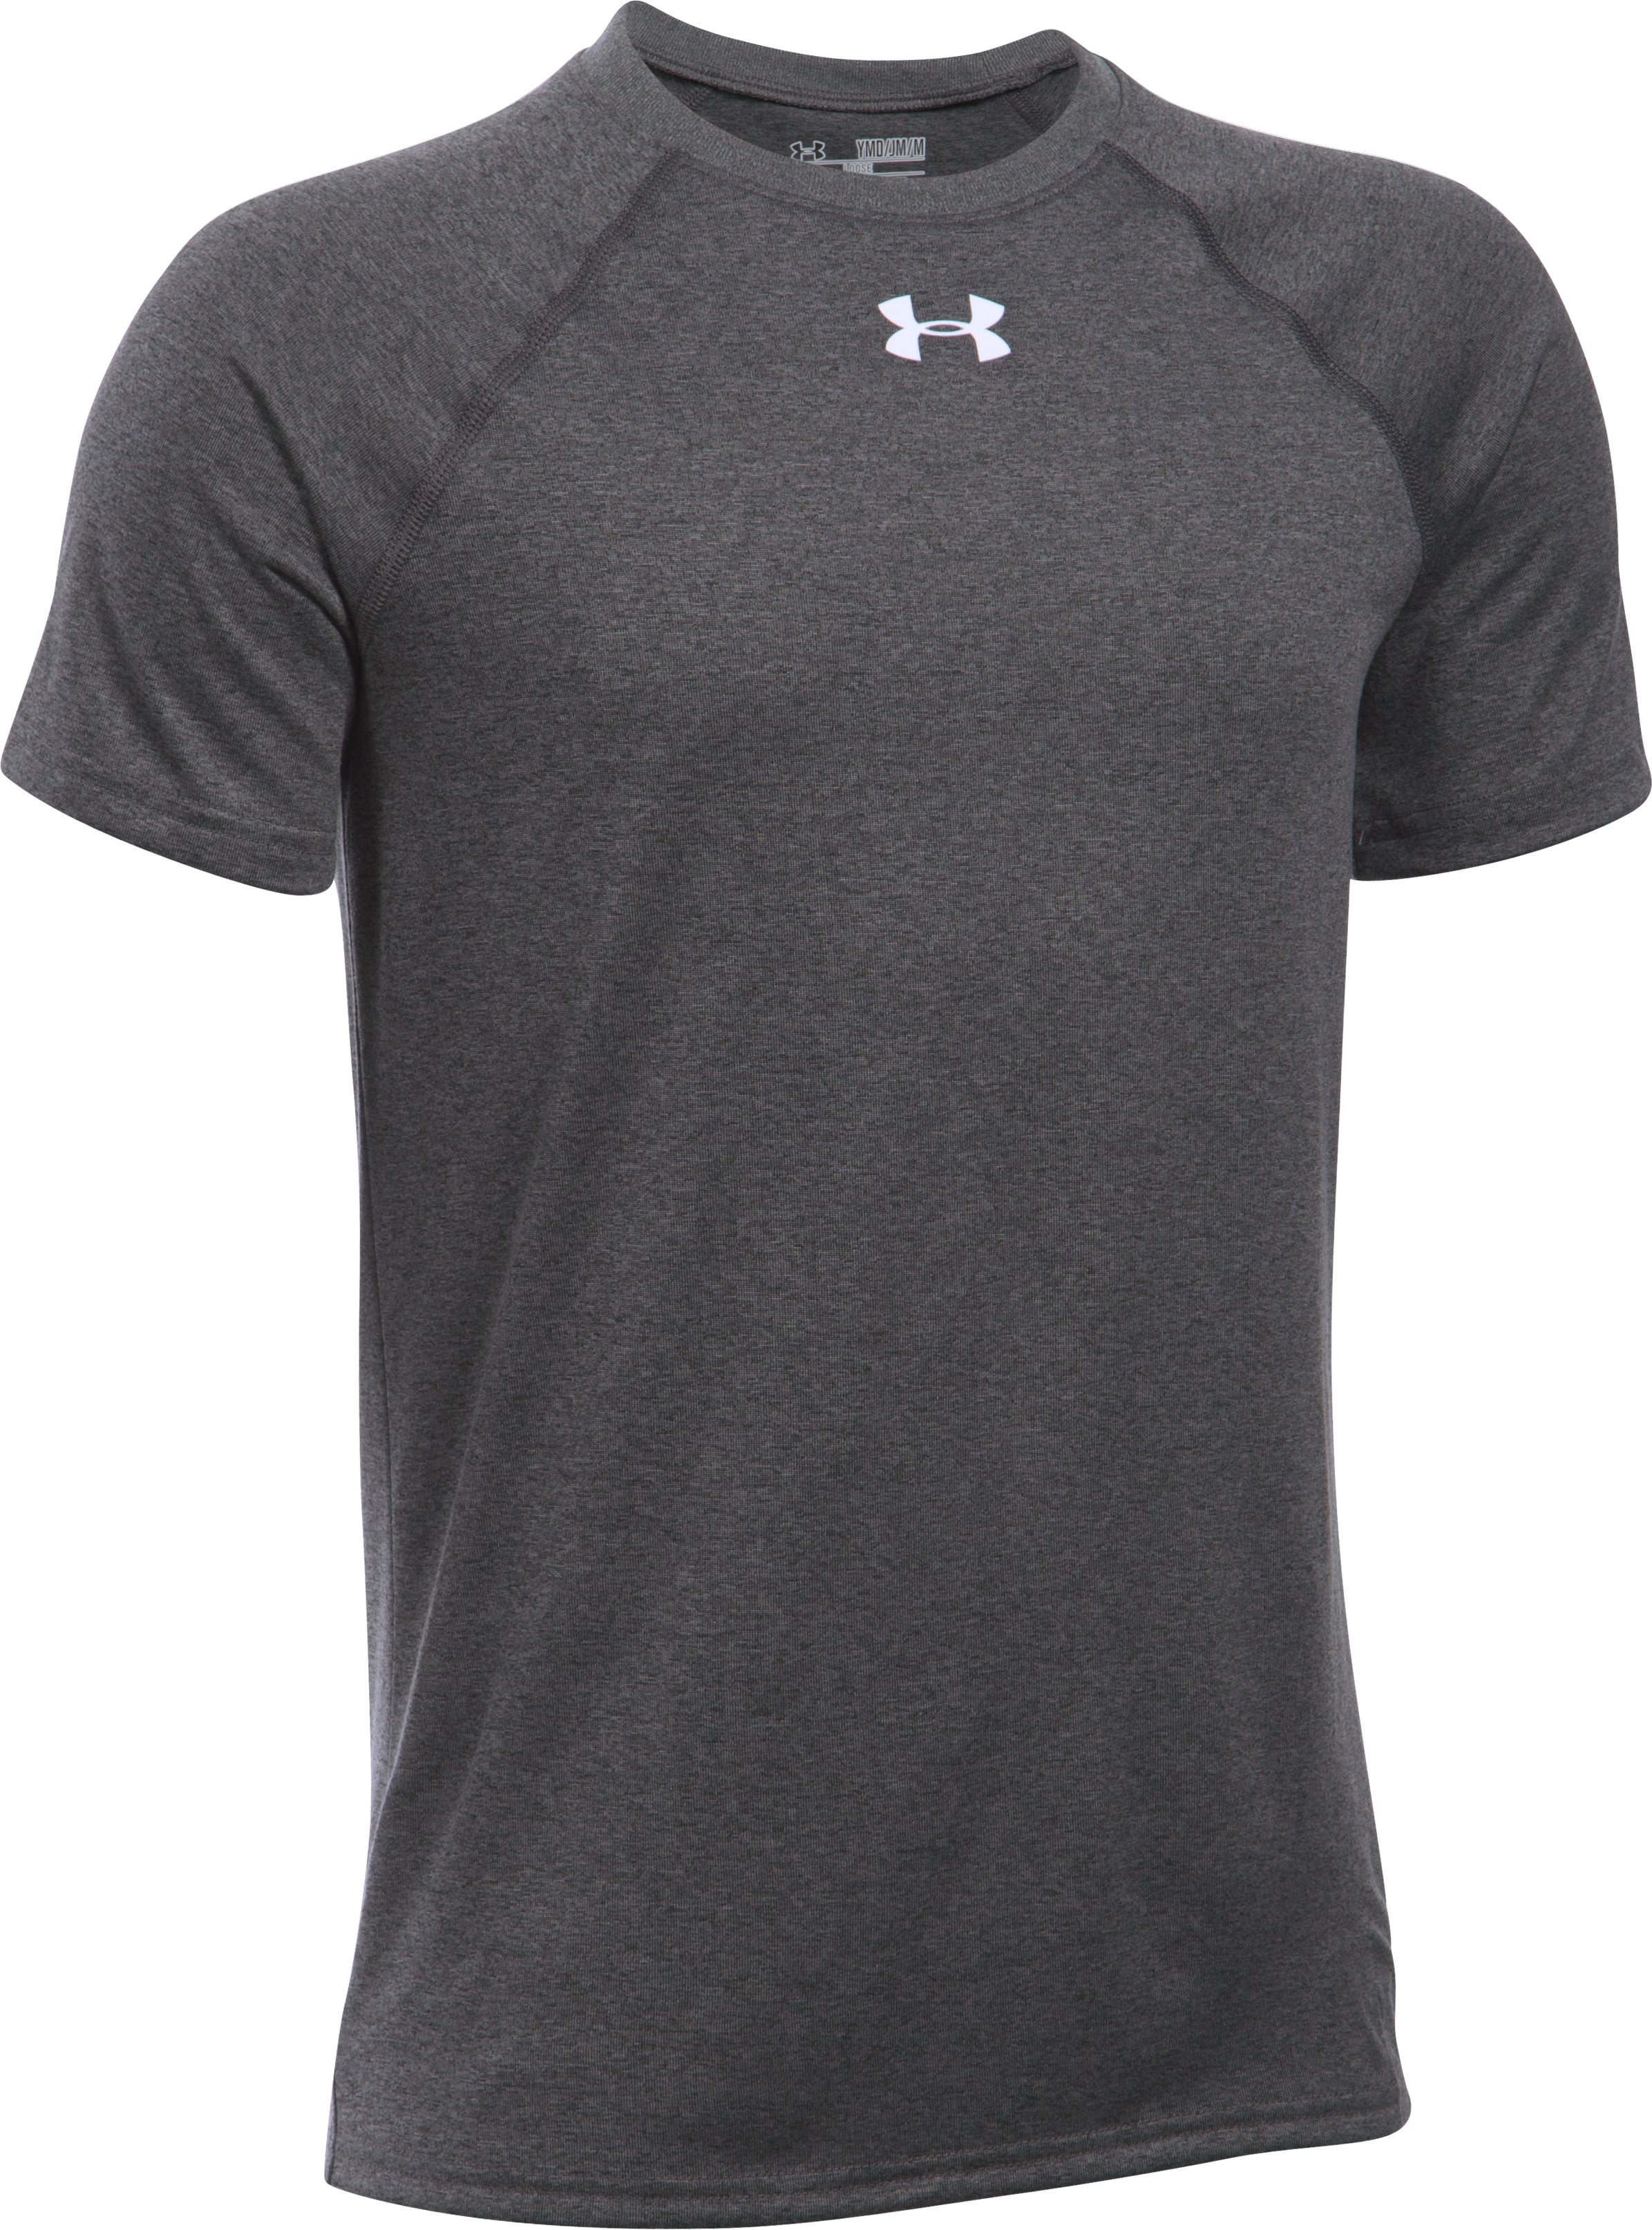 Boys' UA Locker Short Sleeve T-Shirt, Carbon Heather,